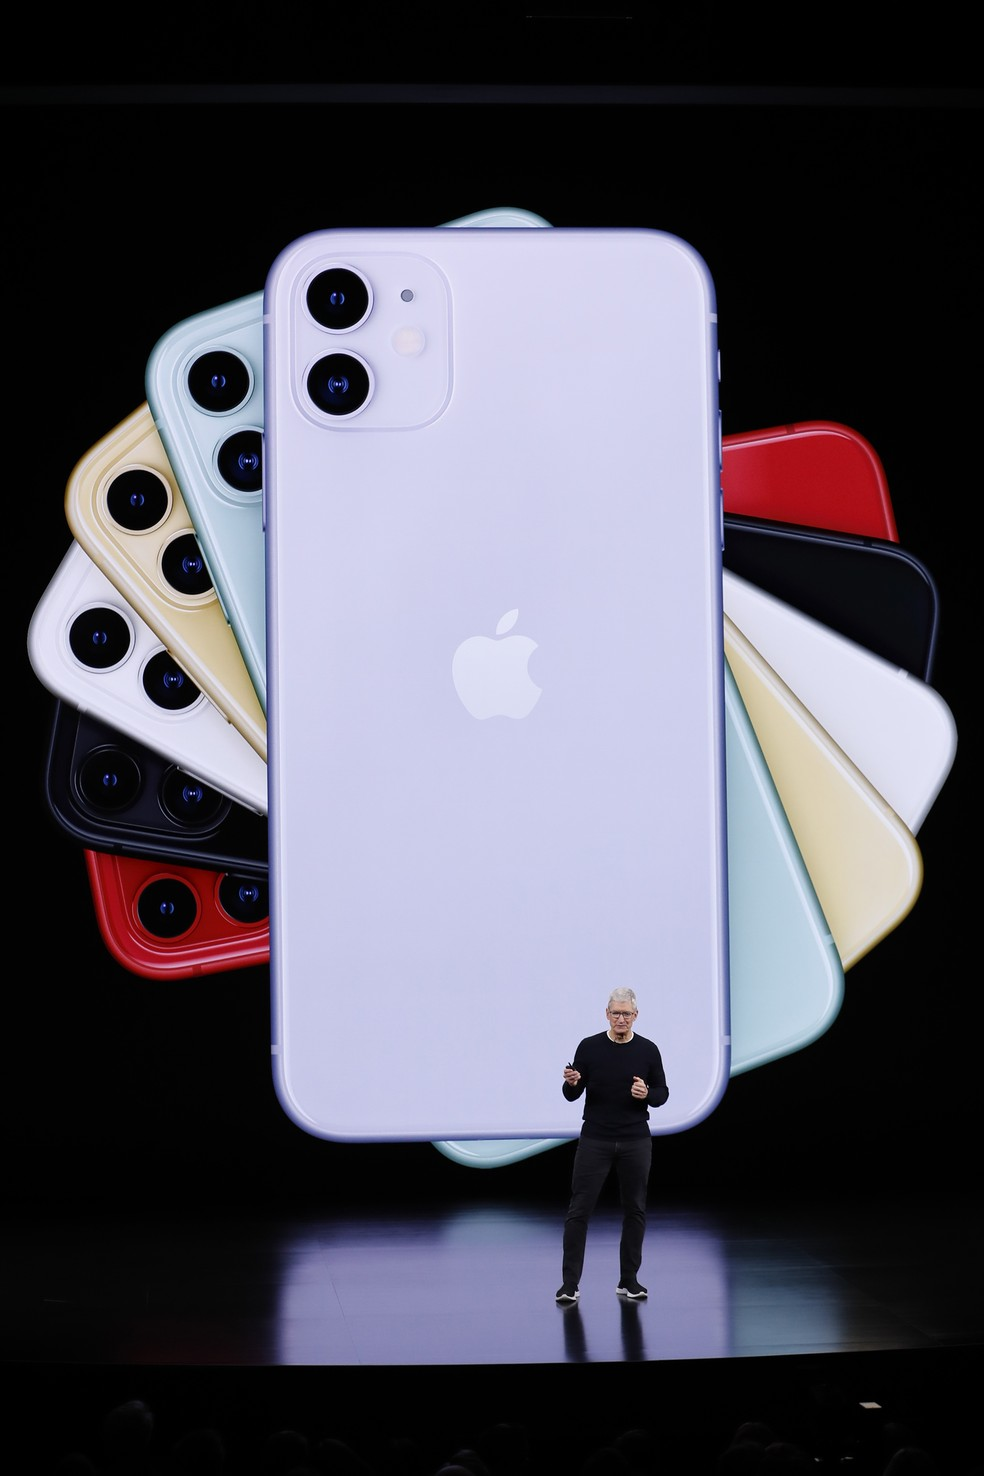 Tim Cook, CEO da Apple, apresenta o iPhone 11 durante evento na Califórnia  — Foto: REUTERS/Stephen Lam